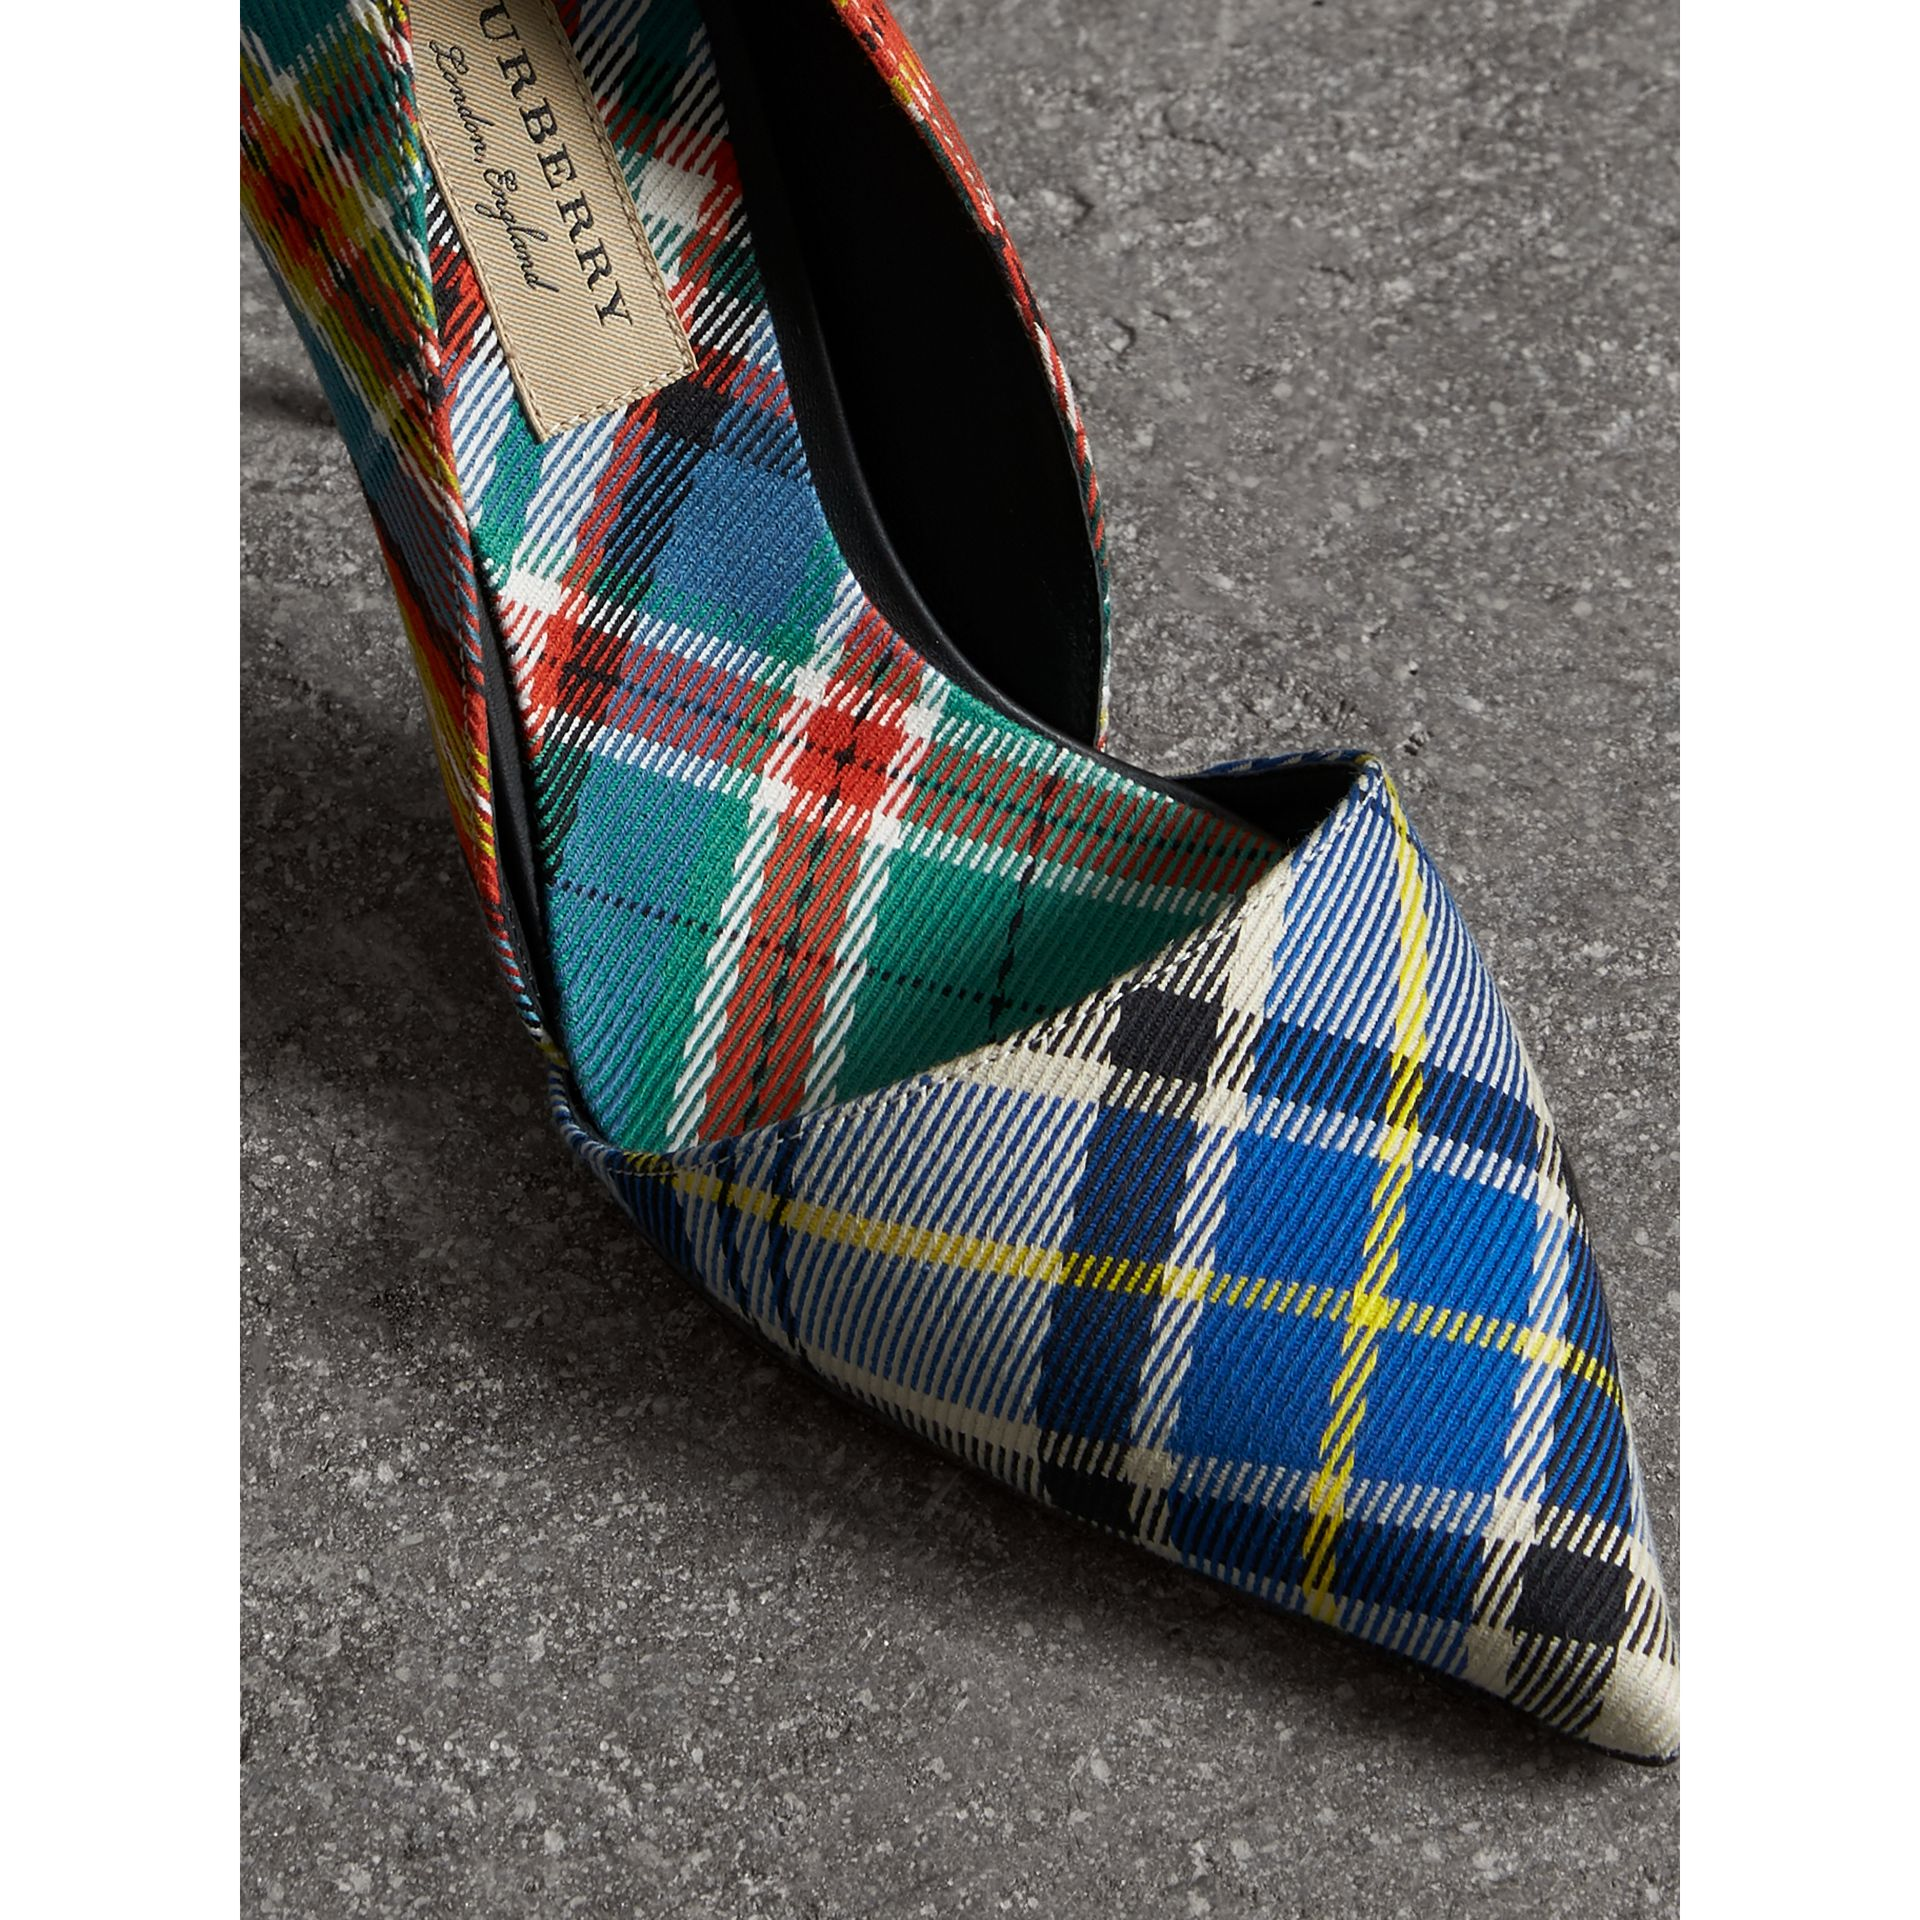 Escarpins en coton tartan (Orange Coquelicot) - Femme | Burberry - photo de la galerie 1